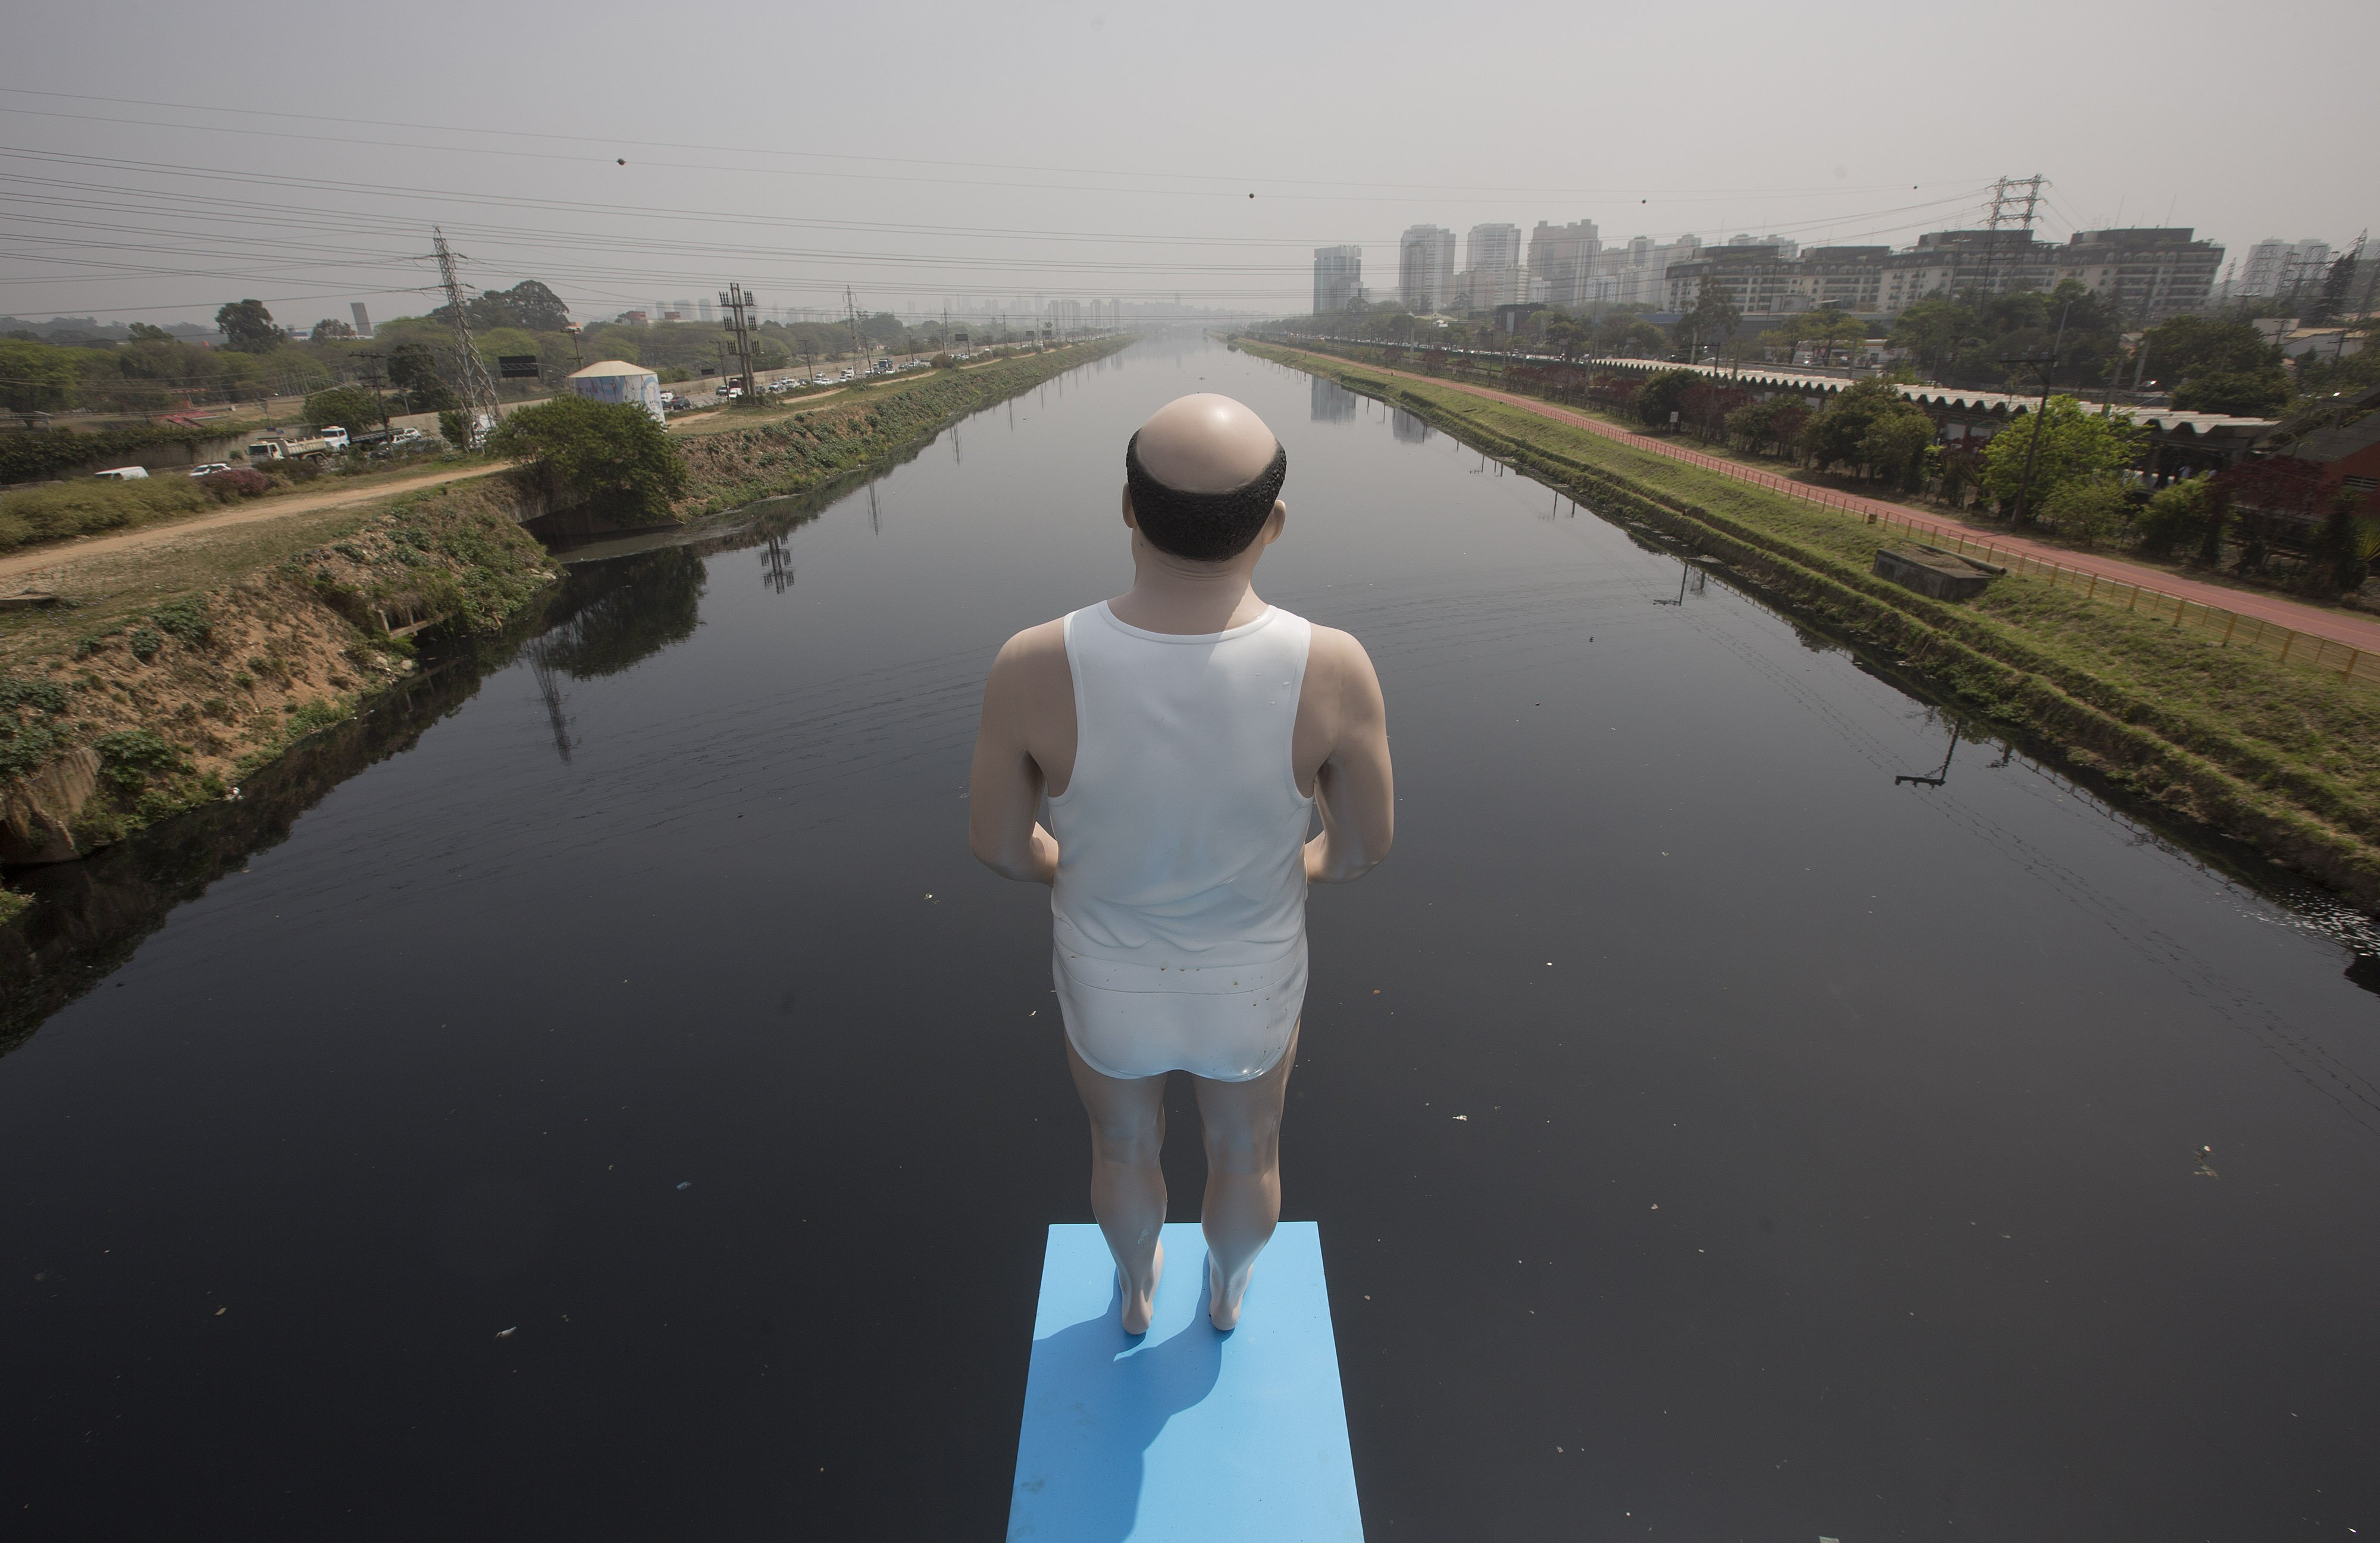 An art installation by Brazilian artist Eduardo Srur made with a life-size mannequin stands over the highly polluted Pinheiros River in Sao Paulo, Brazil on Sept. 18, 2014.